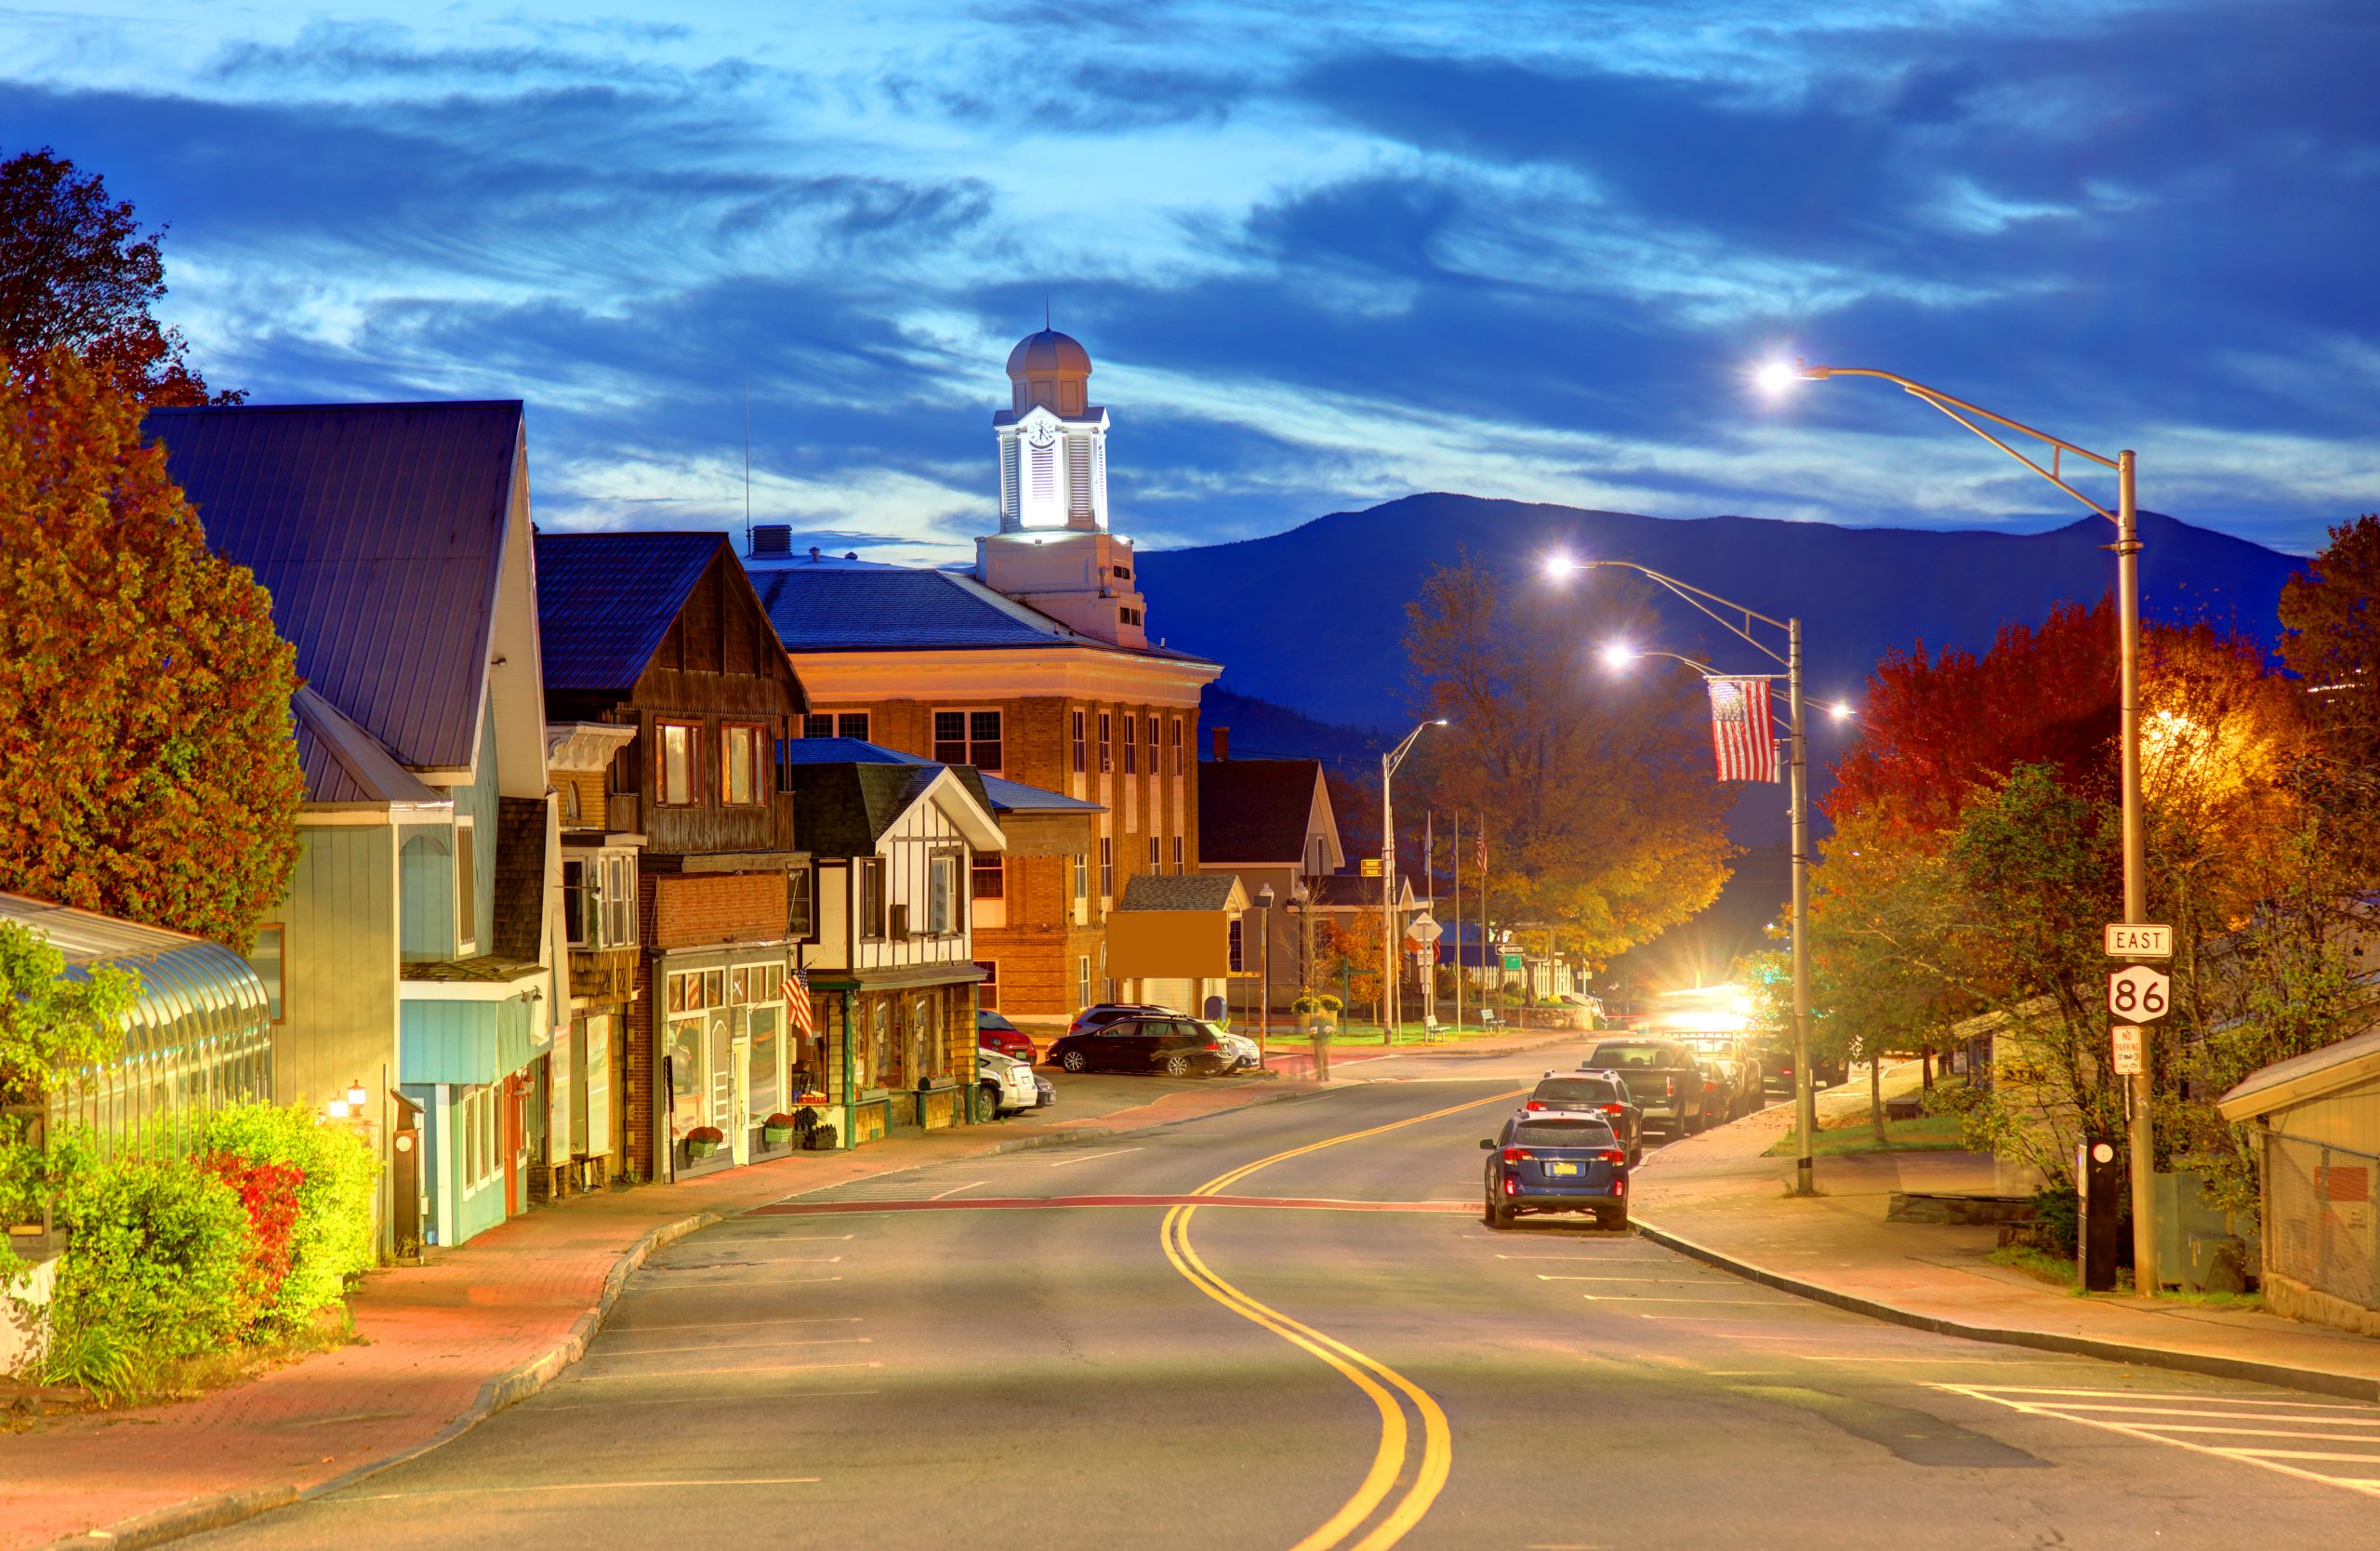 Lake Placid is a village in the Adirondack Mountains in Essex County, New York, United States.